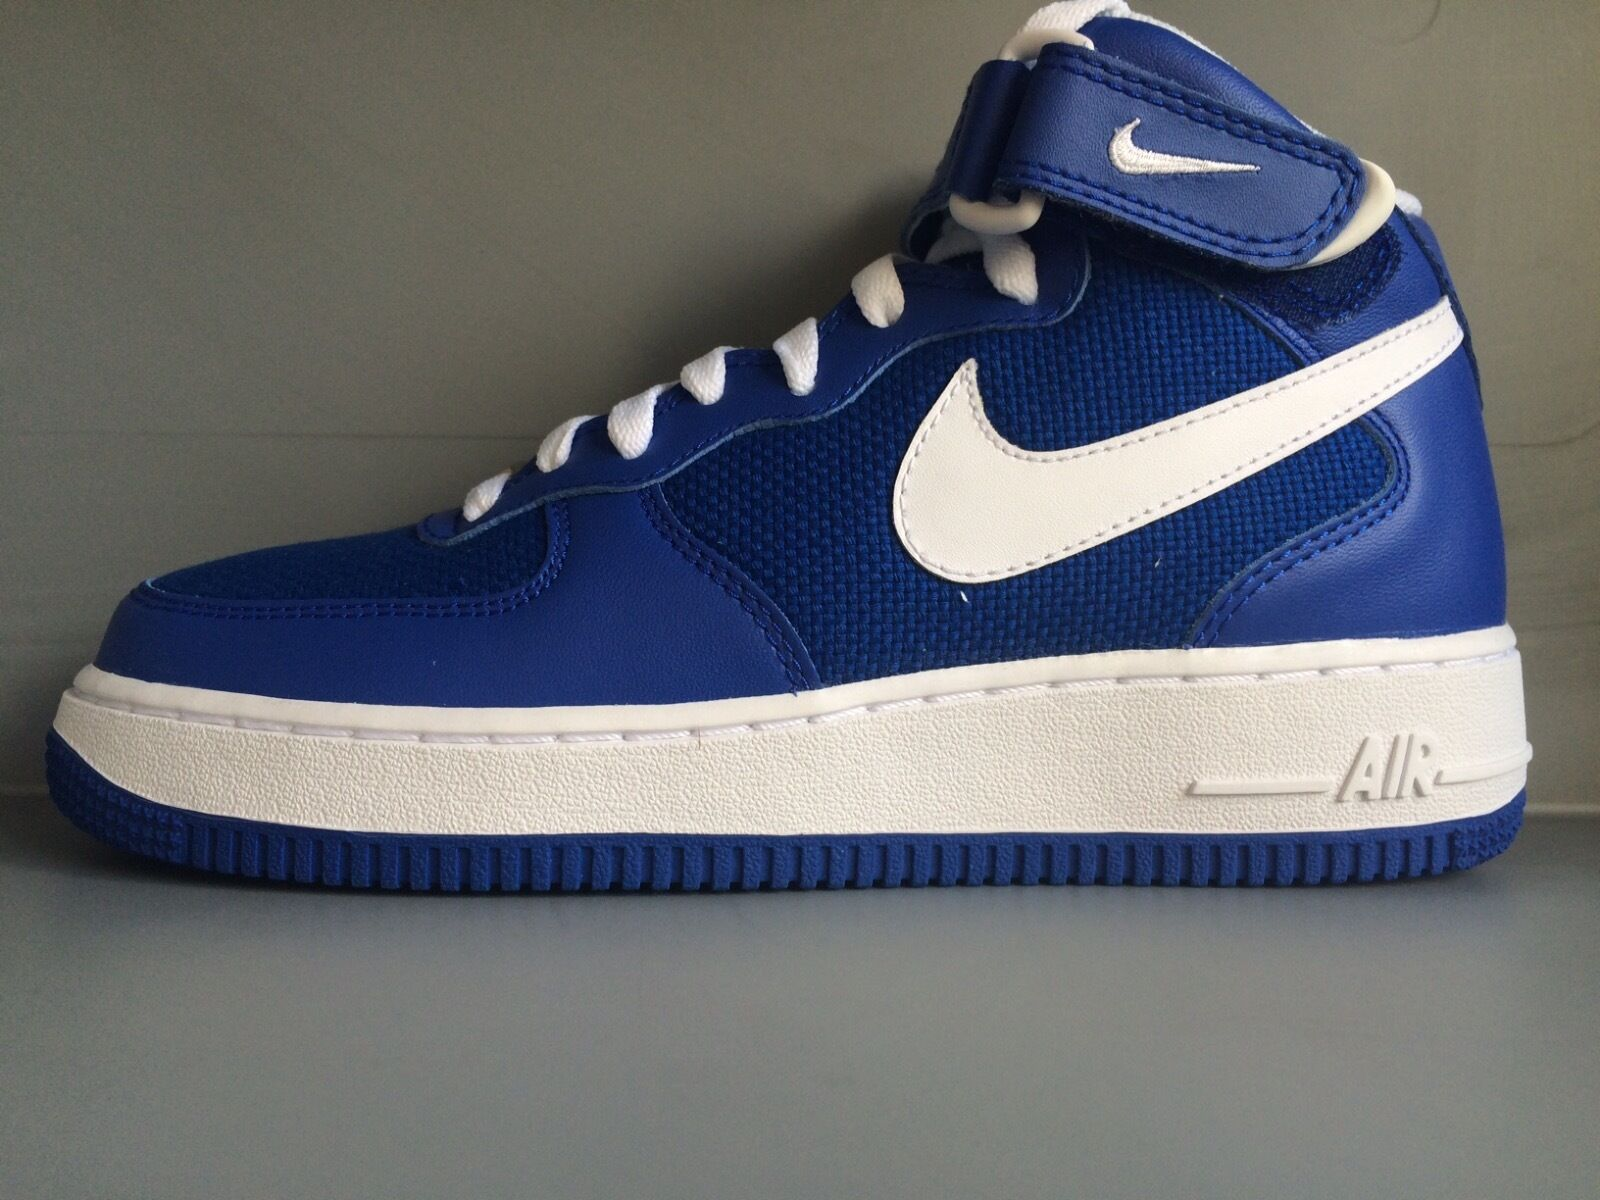 Nike Air Force 1 Mid '07 - Royal Weiß - US 6 EUR 38.5 UK 5.5 (315123 400)